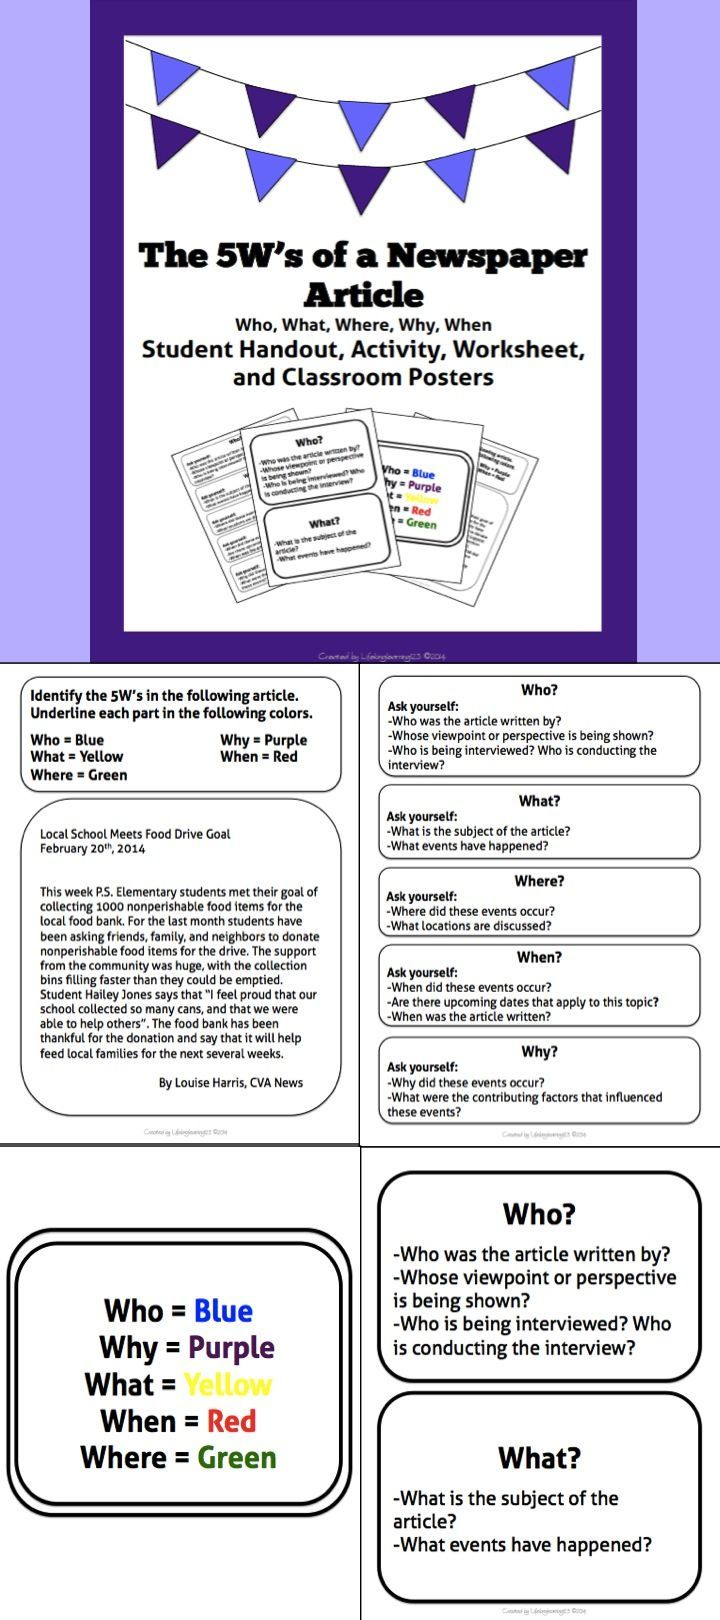 How To Use Newspaper Articles In The Classroom Buscar Con Google Newspaper Article Student Newspaper Student Activities